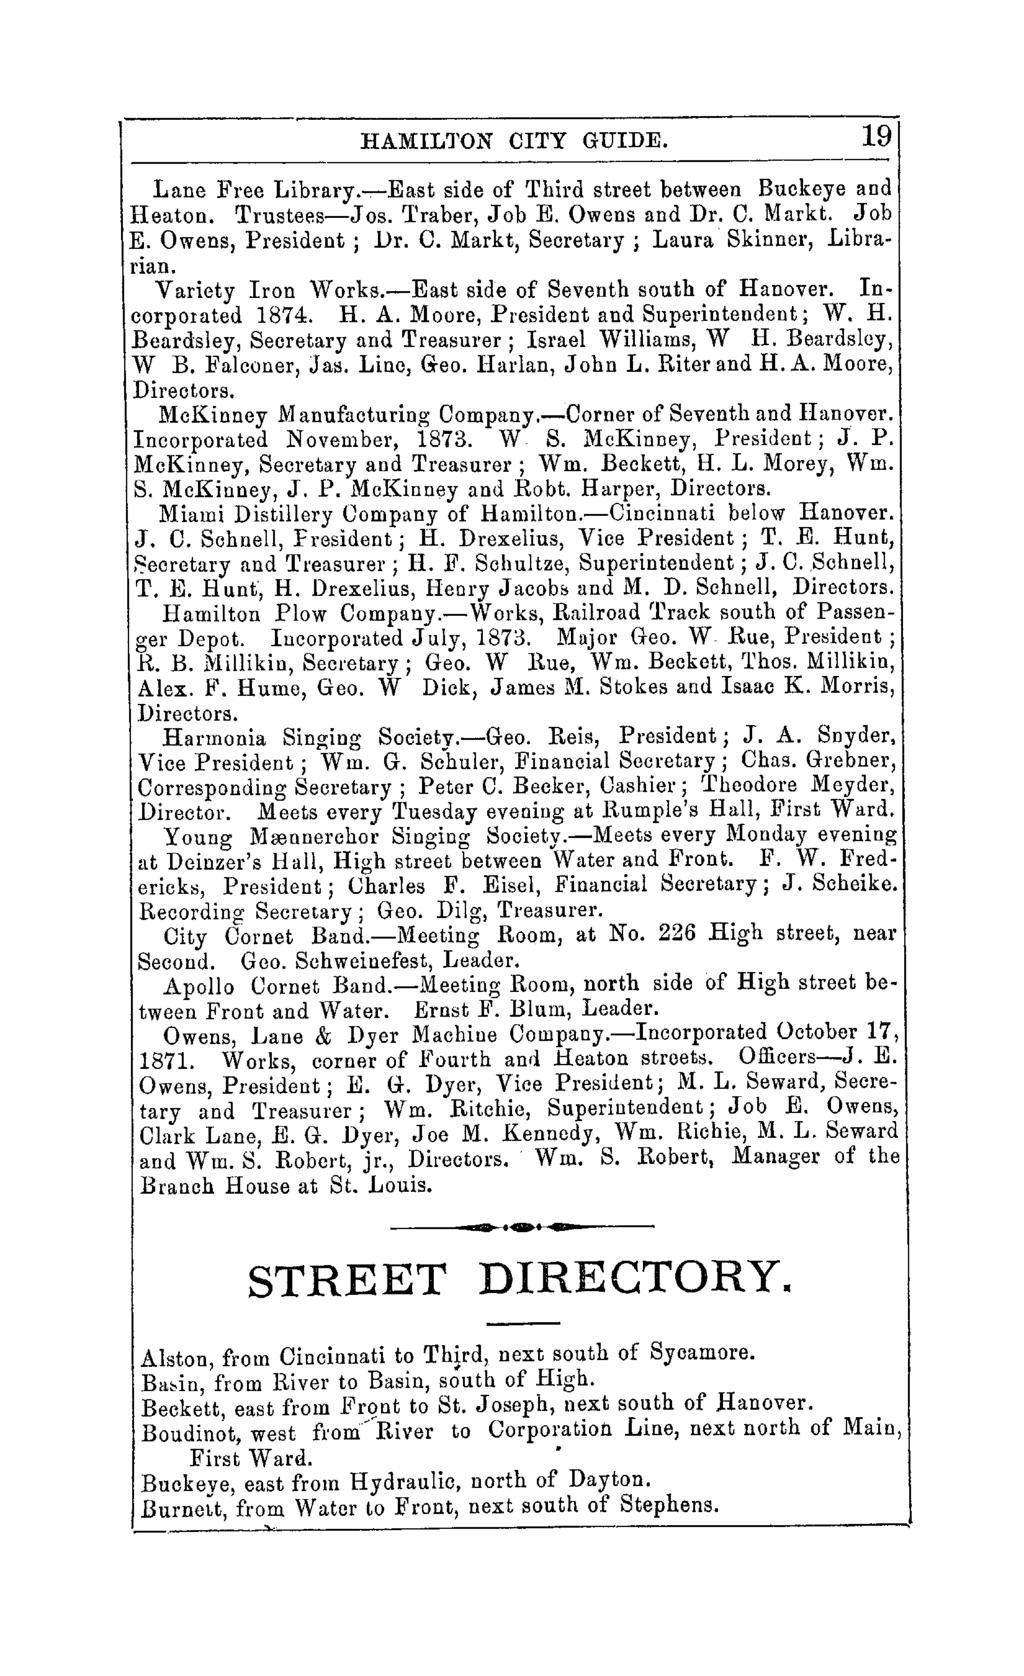 HAMILTON CITY GUIDE. 19 Lane Free Library.-. East side of Third street between Buckeye and Heaton. Trustees-J os. 'l'raber, Job E. Owens and Dr. C. Markt. Job ~. Owens, President; Dr. C. Markt, Secretary; Laura Skinner, Libranan.